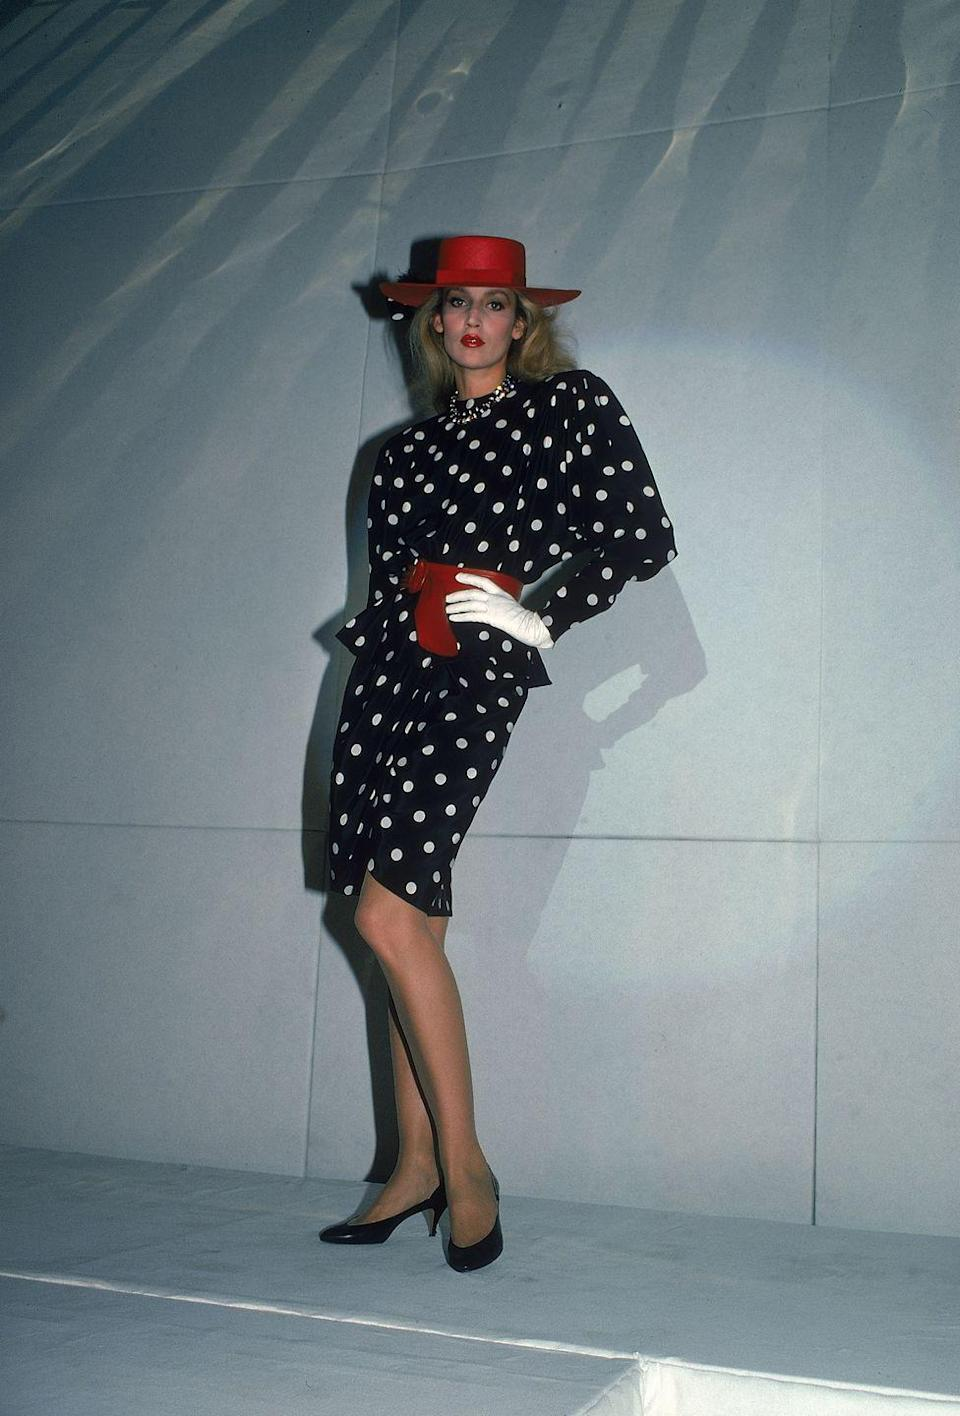 <p>Oh, the '80s. First, shoulder pads were everything. And the more polka dots, the better. Finishing a look off with bold matching accessories was a must. </p>